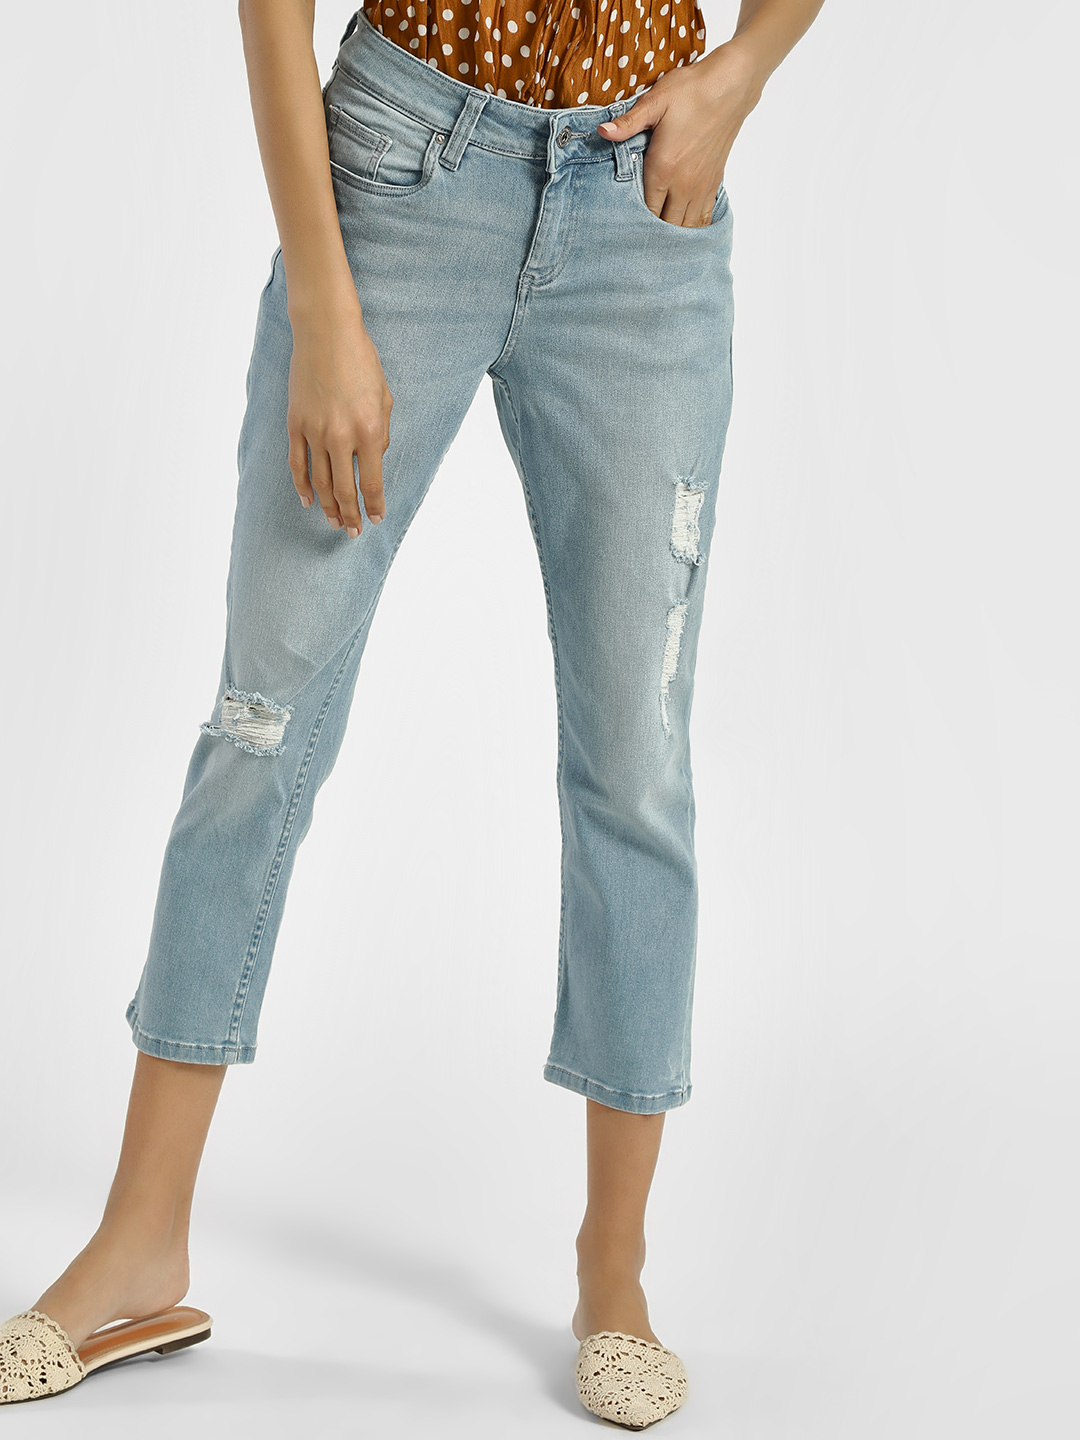 Blue Saint Blue Light Wash Distressed Cropped Jeans 1